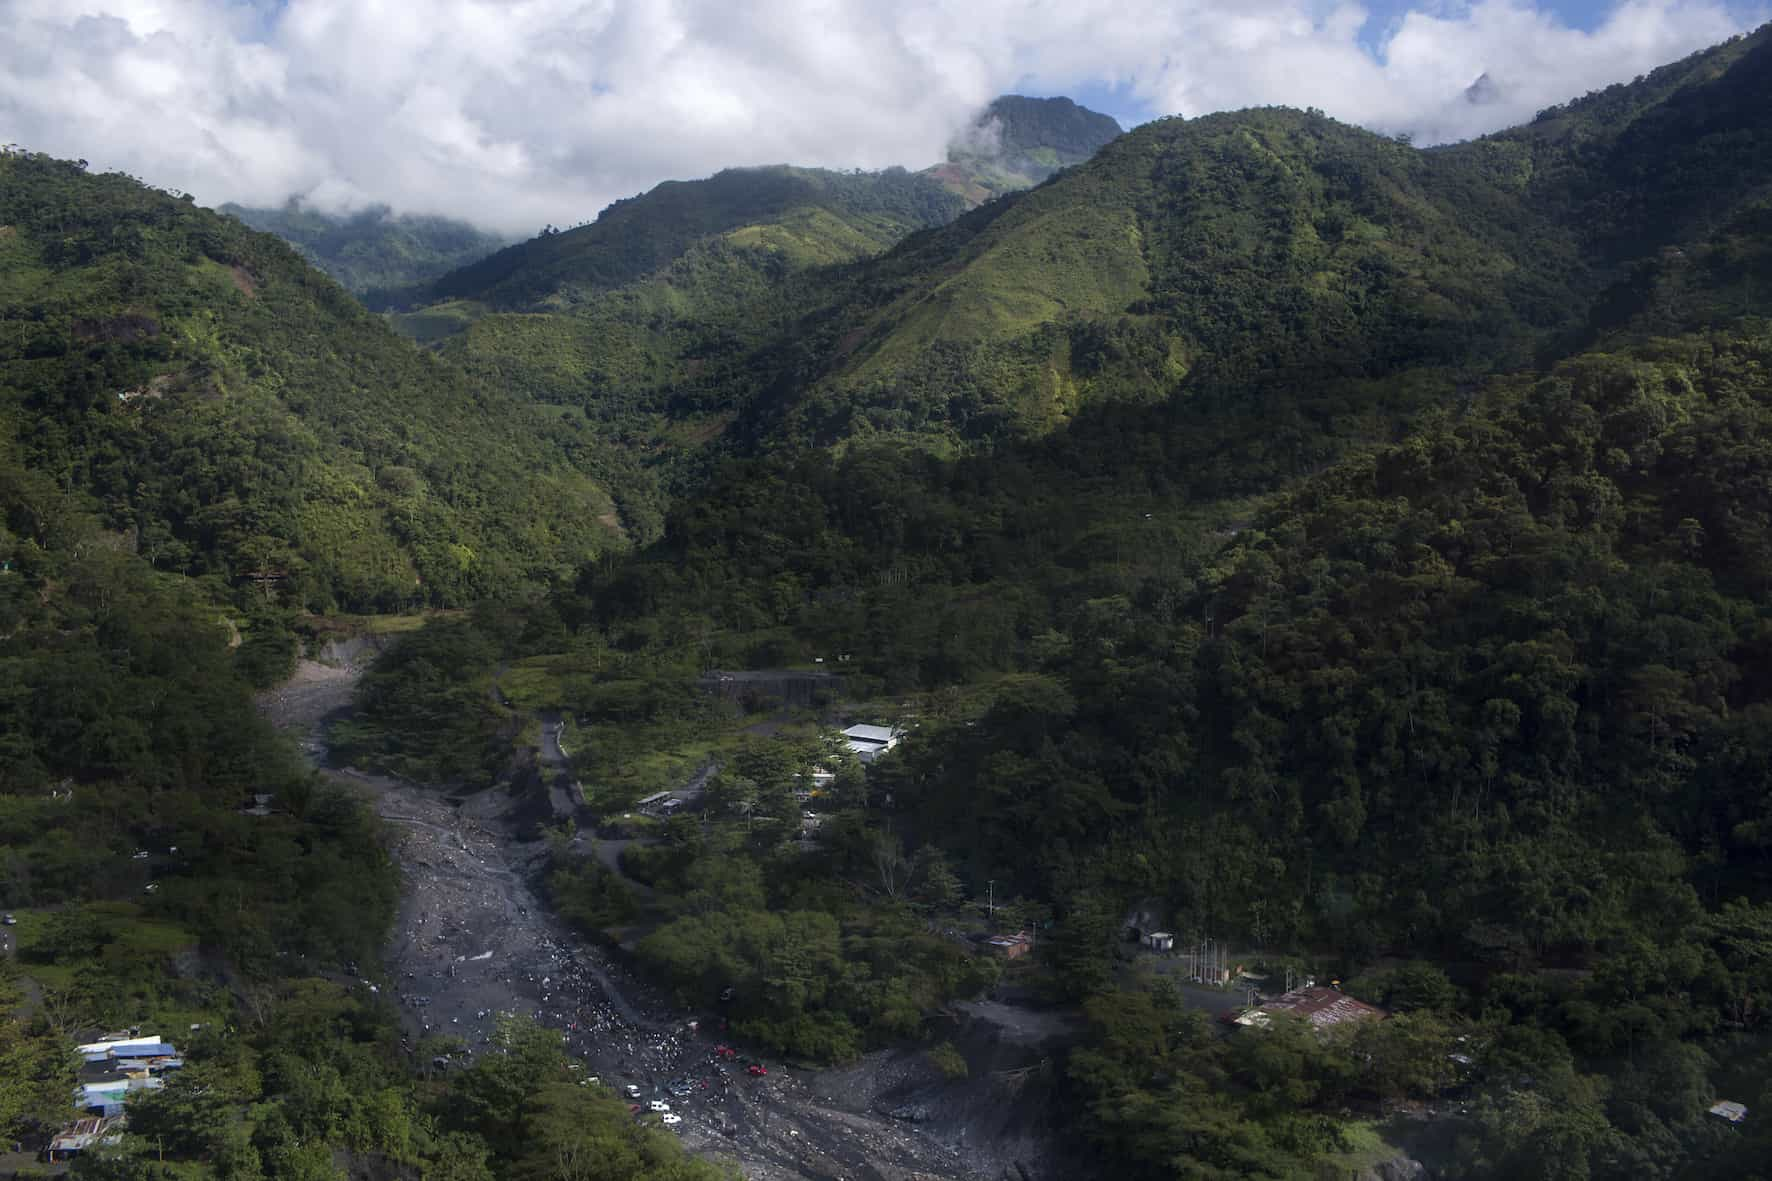 This part of Muzo, Colombia, shown on July 24, 2015 is where Minería Texas Colombia, a U.S. emerald mining company, owns the rights to the subsurface. The company purchased the mine from emerald czar Victor Carraza in 2013.